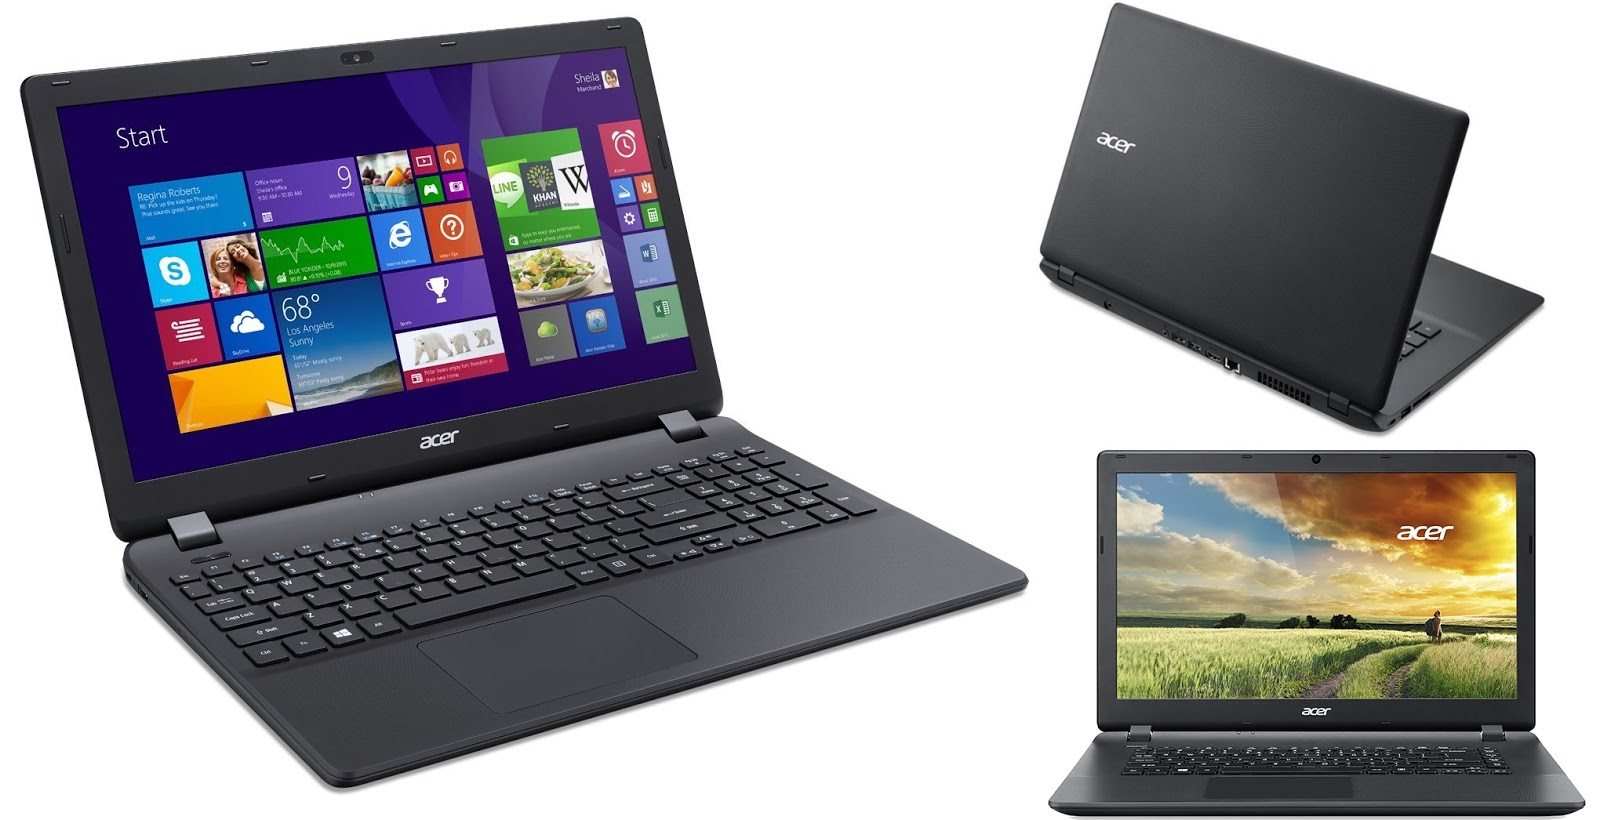 ACER ASPIRE ES1-572 REALTEK LAN WINDOWS 10 DRIVER DOWNLOAD